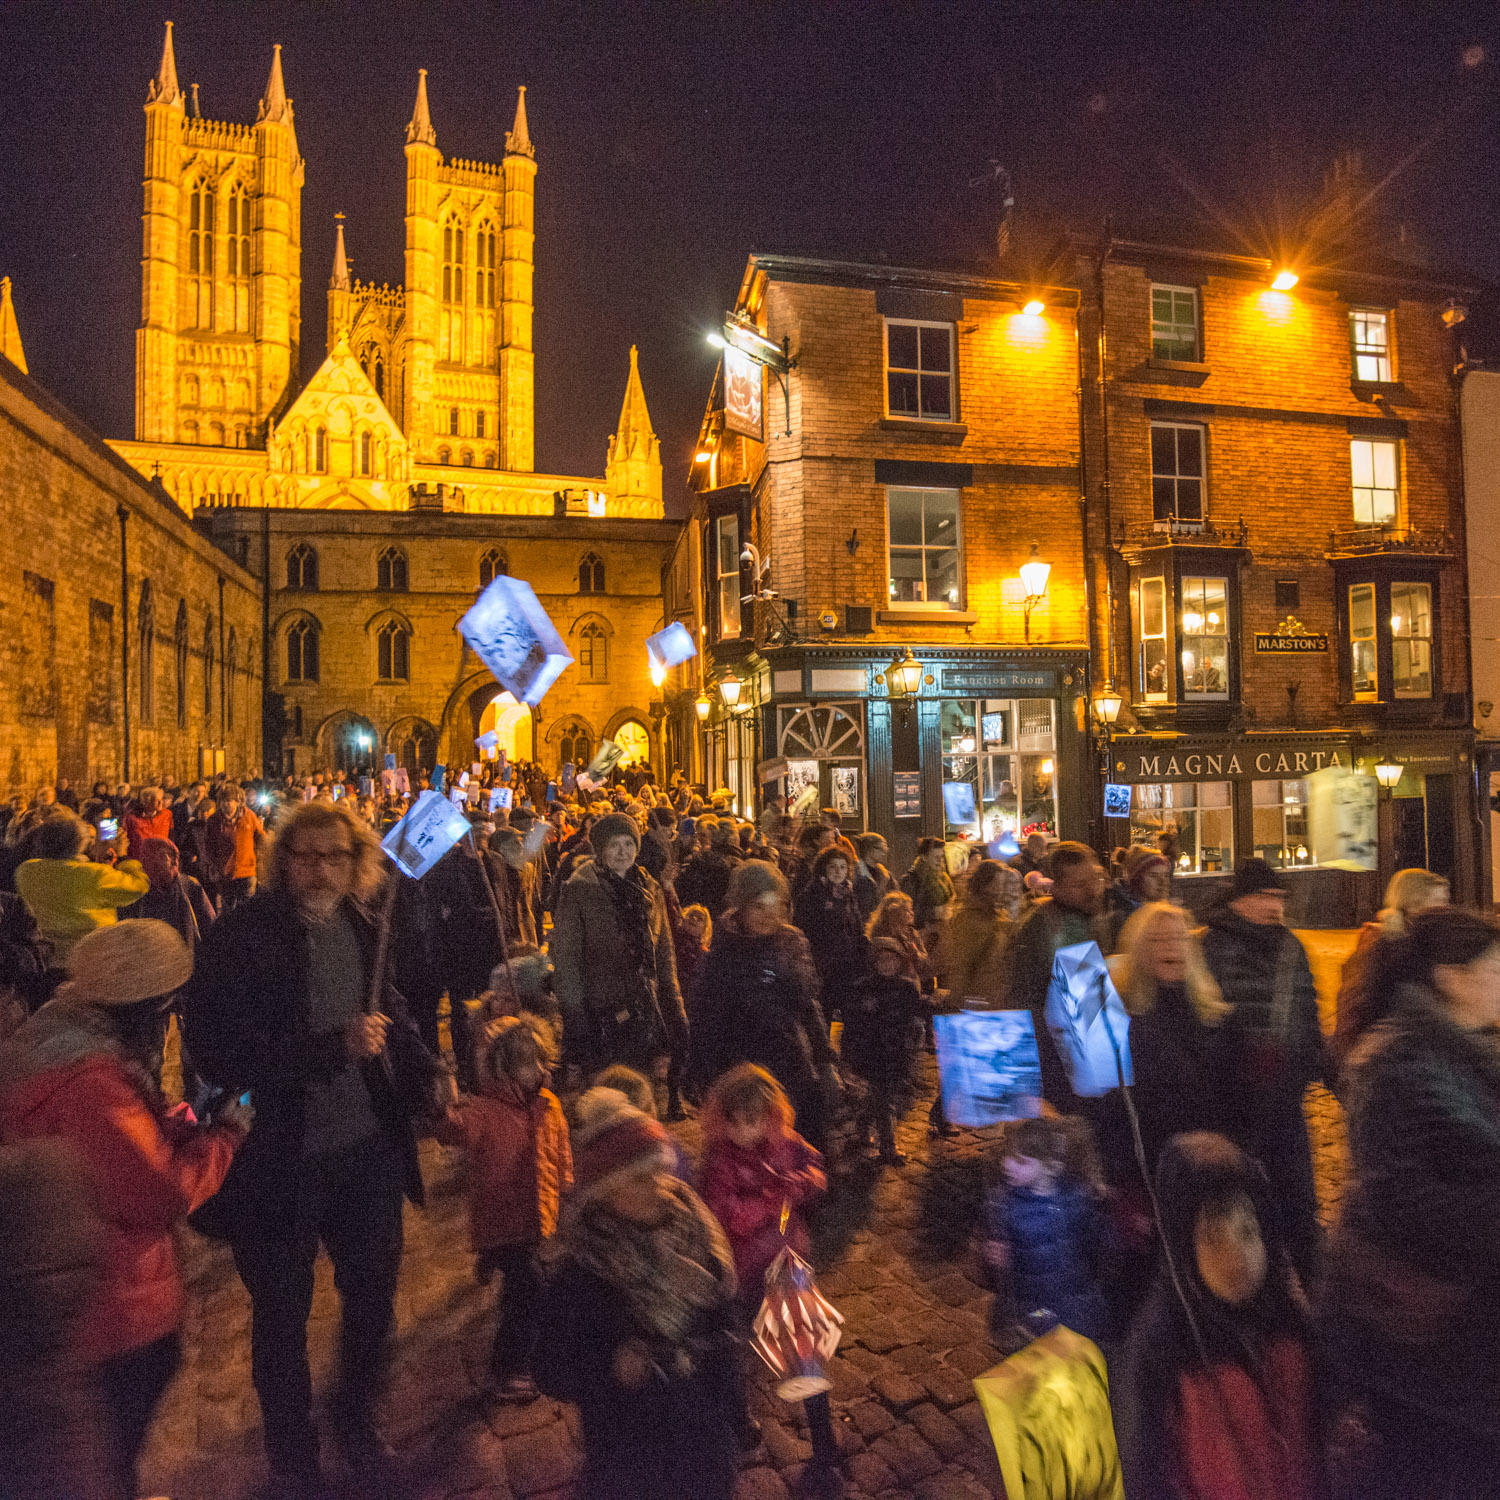 Procession to celebrate the launch of the Tree Charter in Lincoln, November 6 2017.